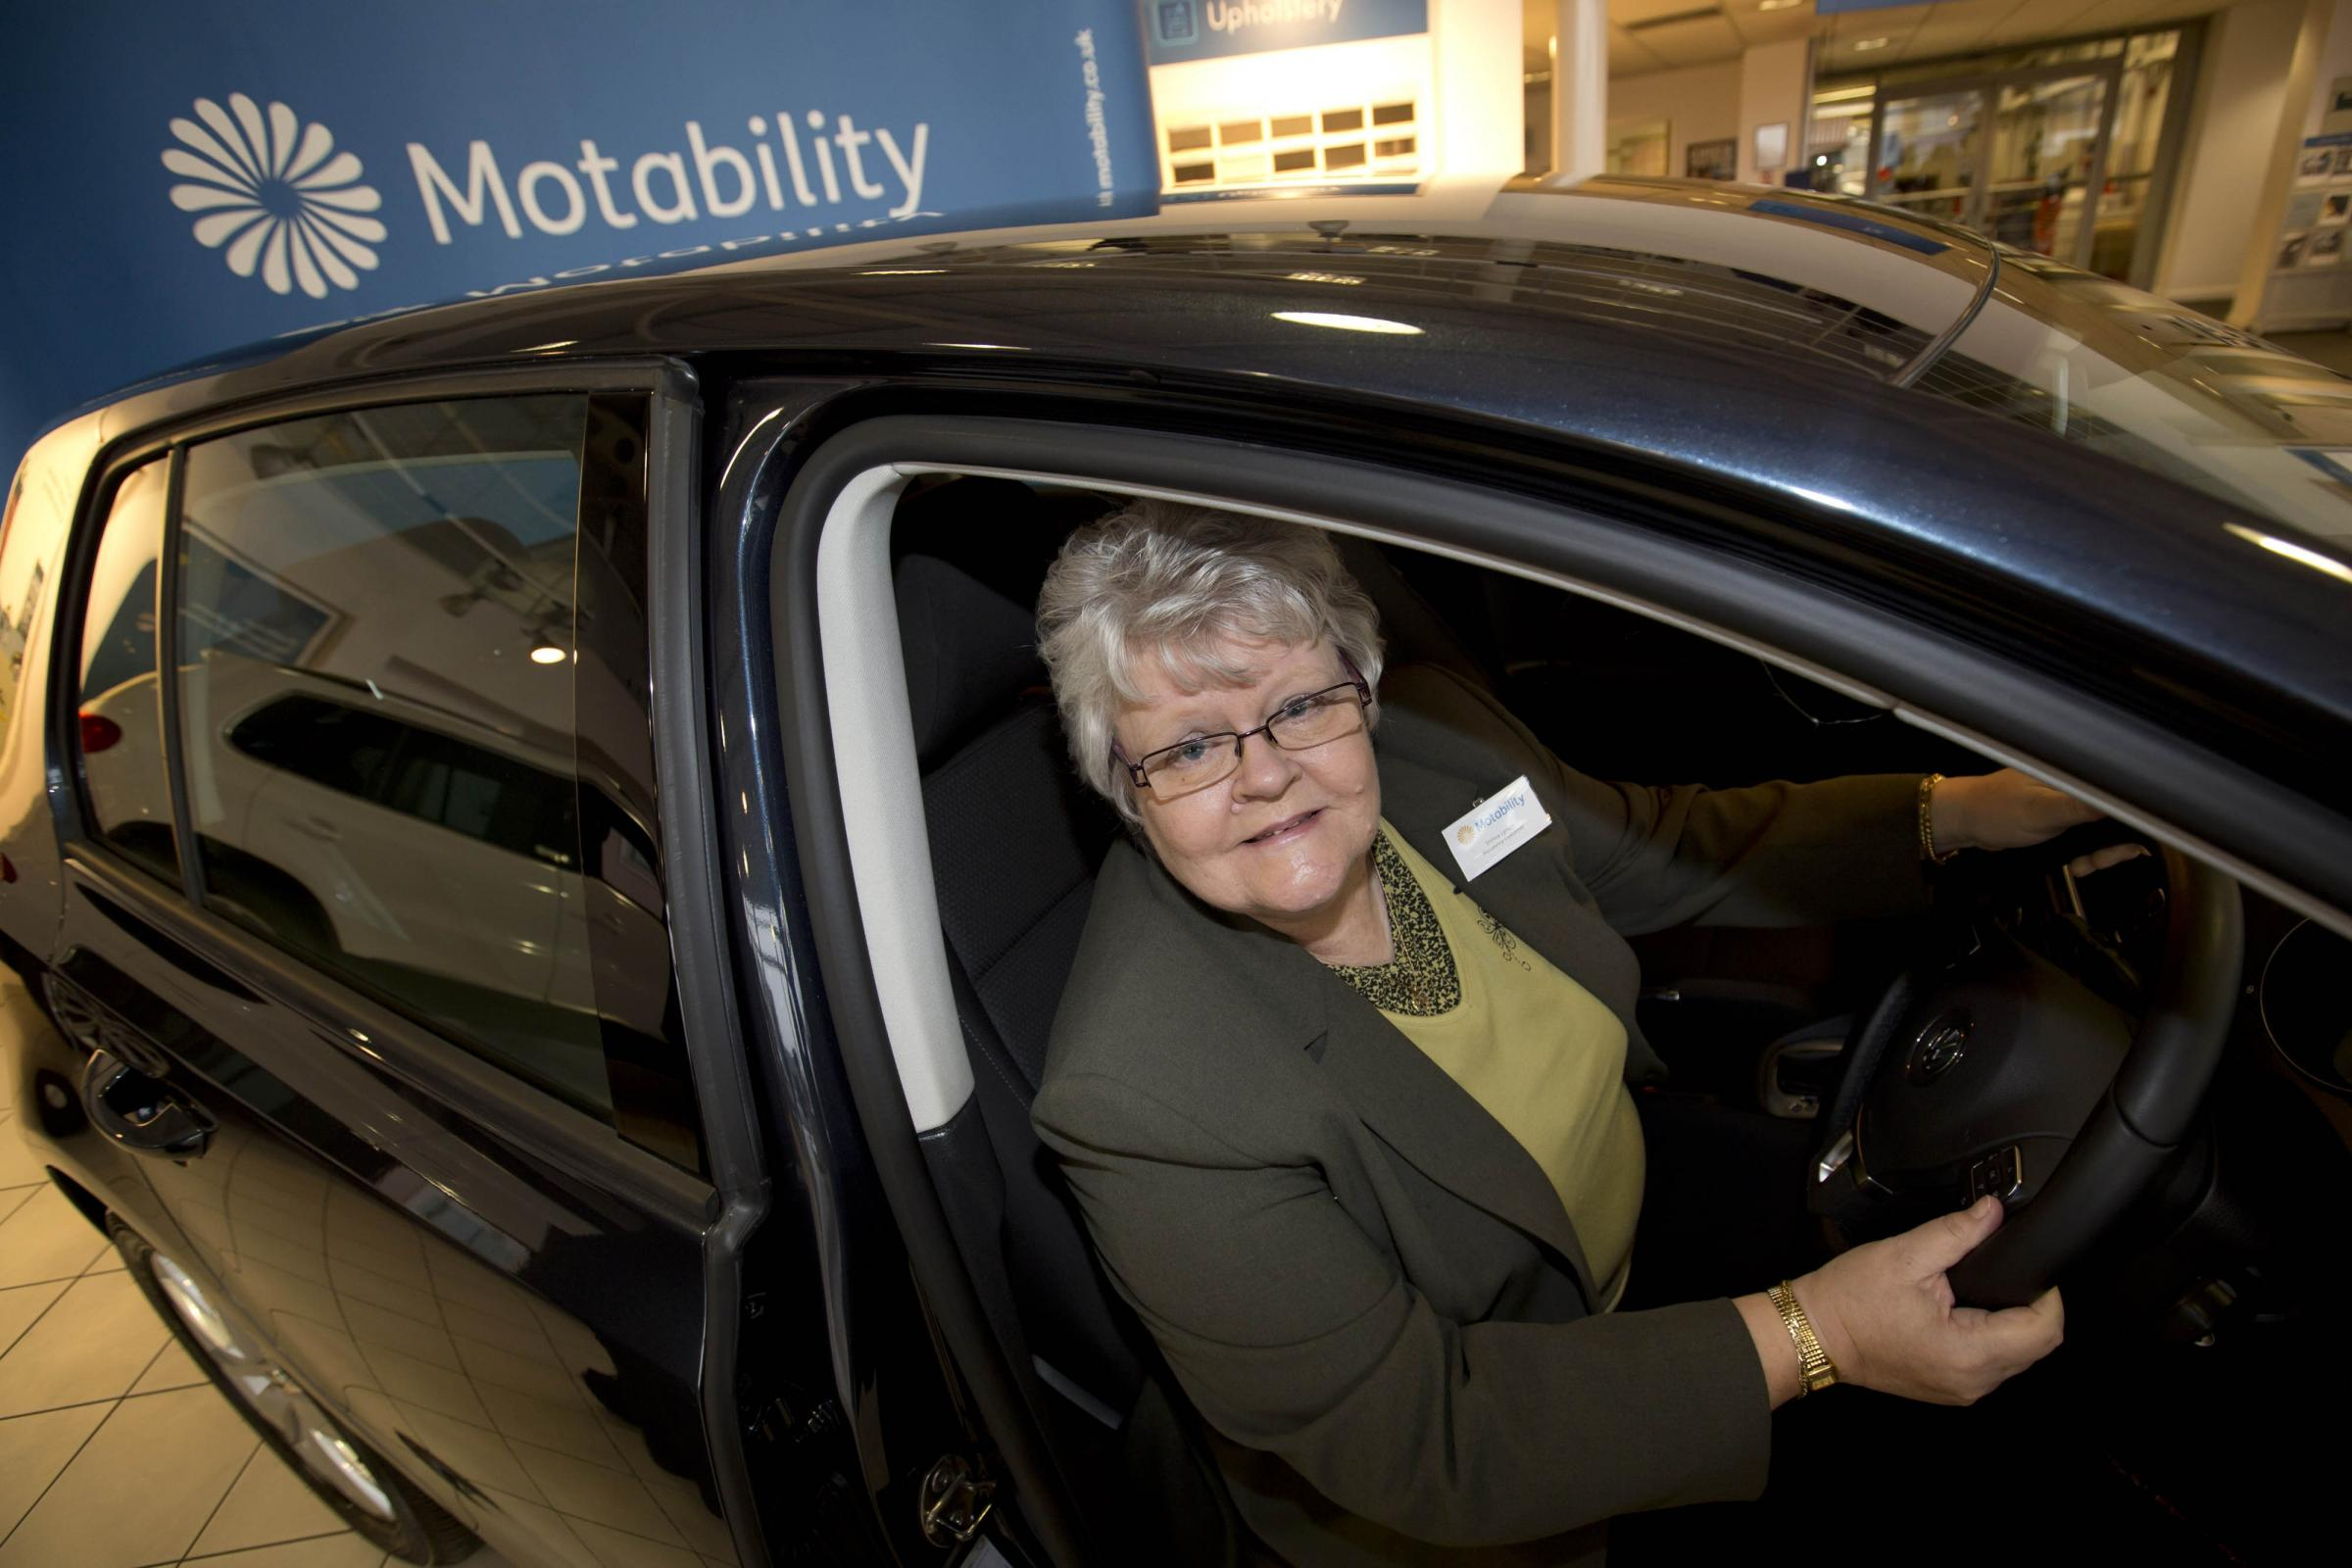 A customer sits in her new Motability car at a Volkswagen dealership